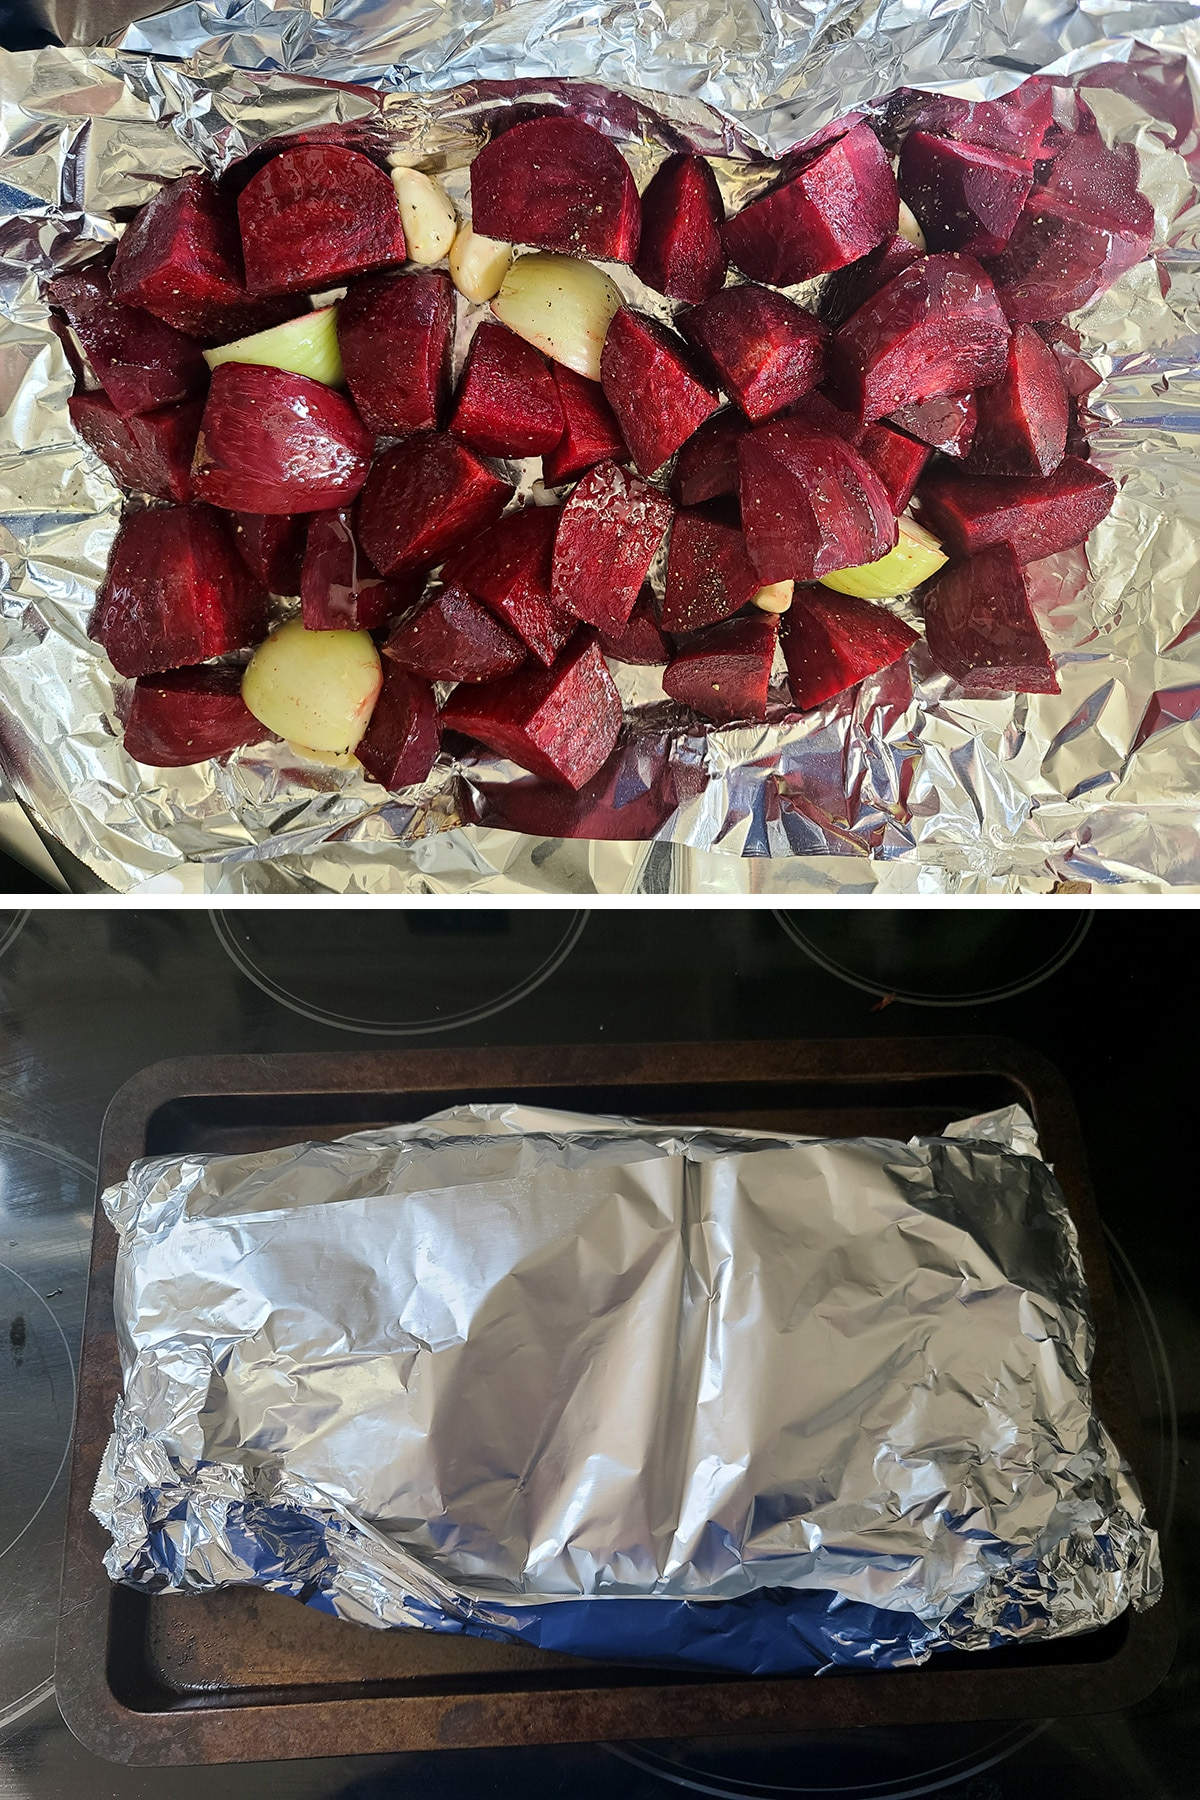 The beets, onions, and garlic have been tossed with oil, salt and pepper, and are wrapped in foil.